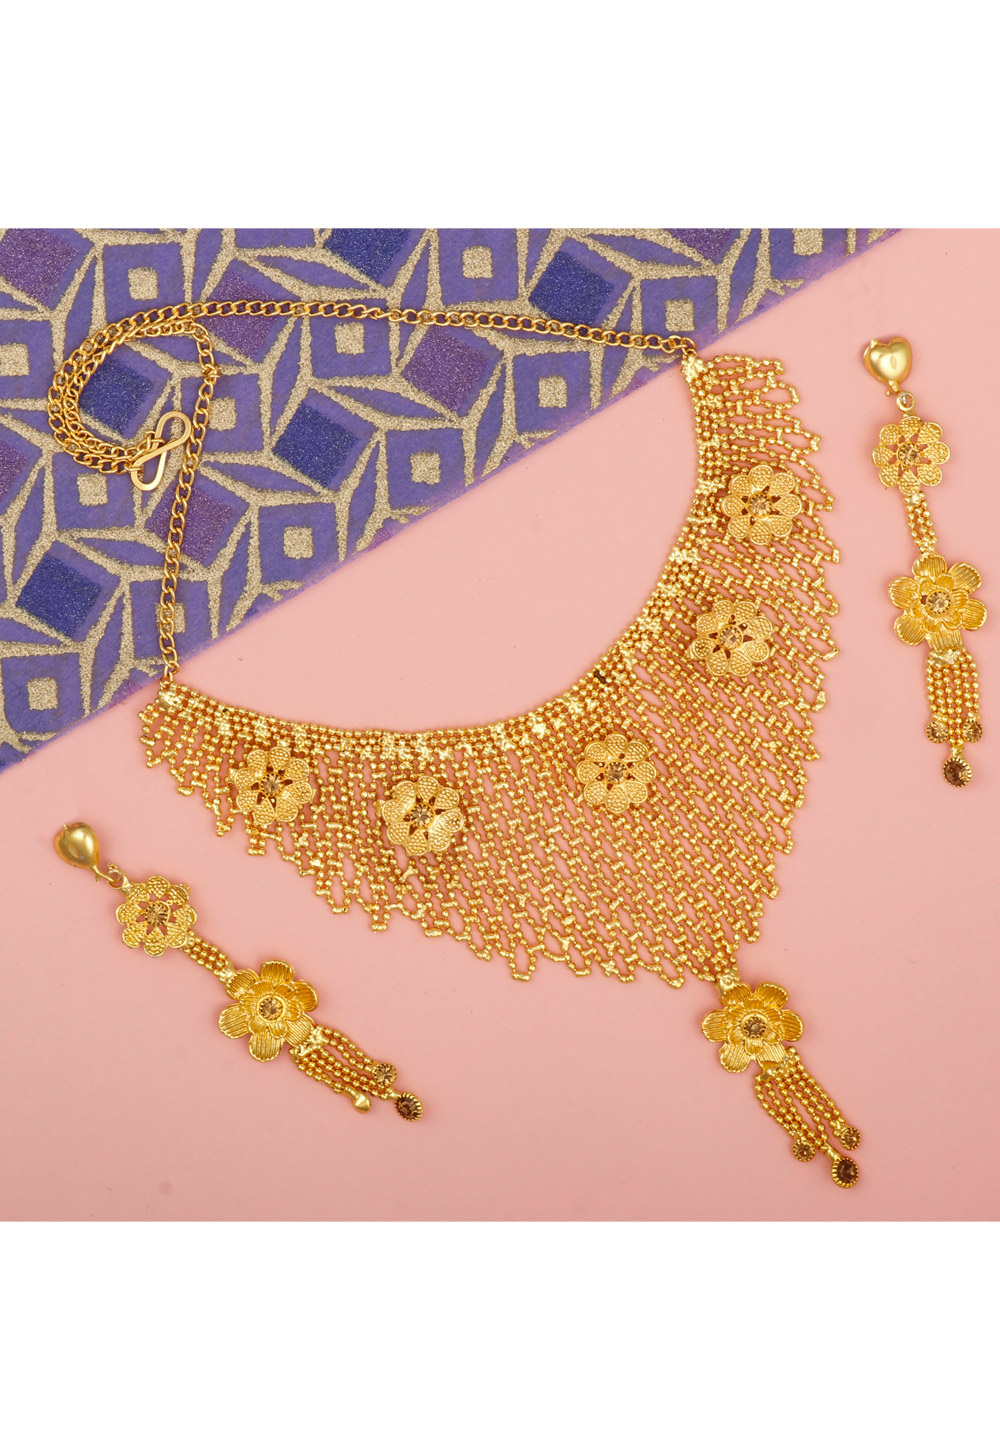 Golden Alloy Necklace Set With Earrings 216419